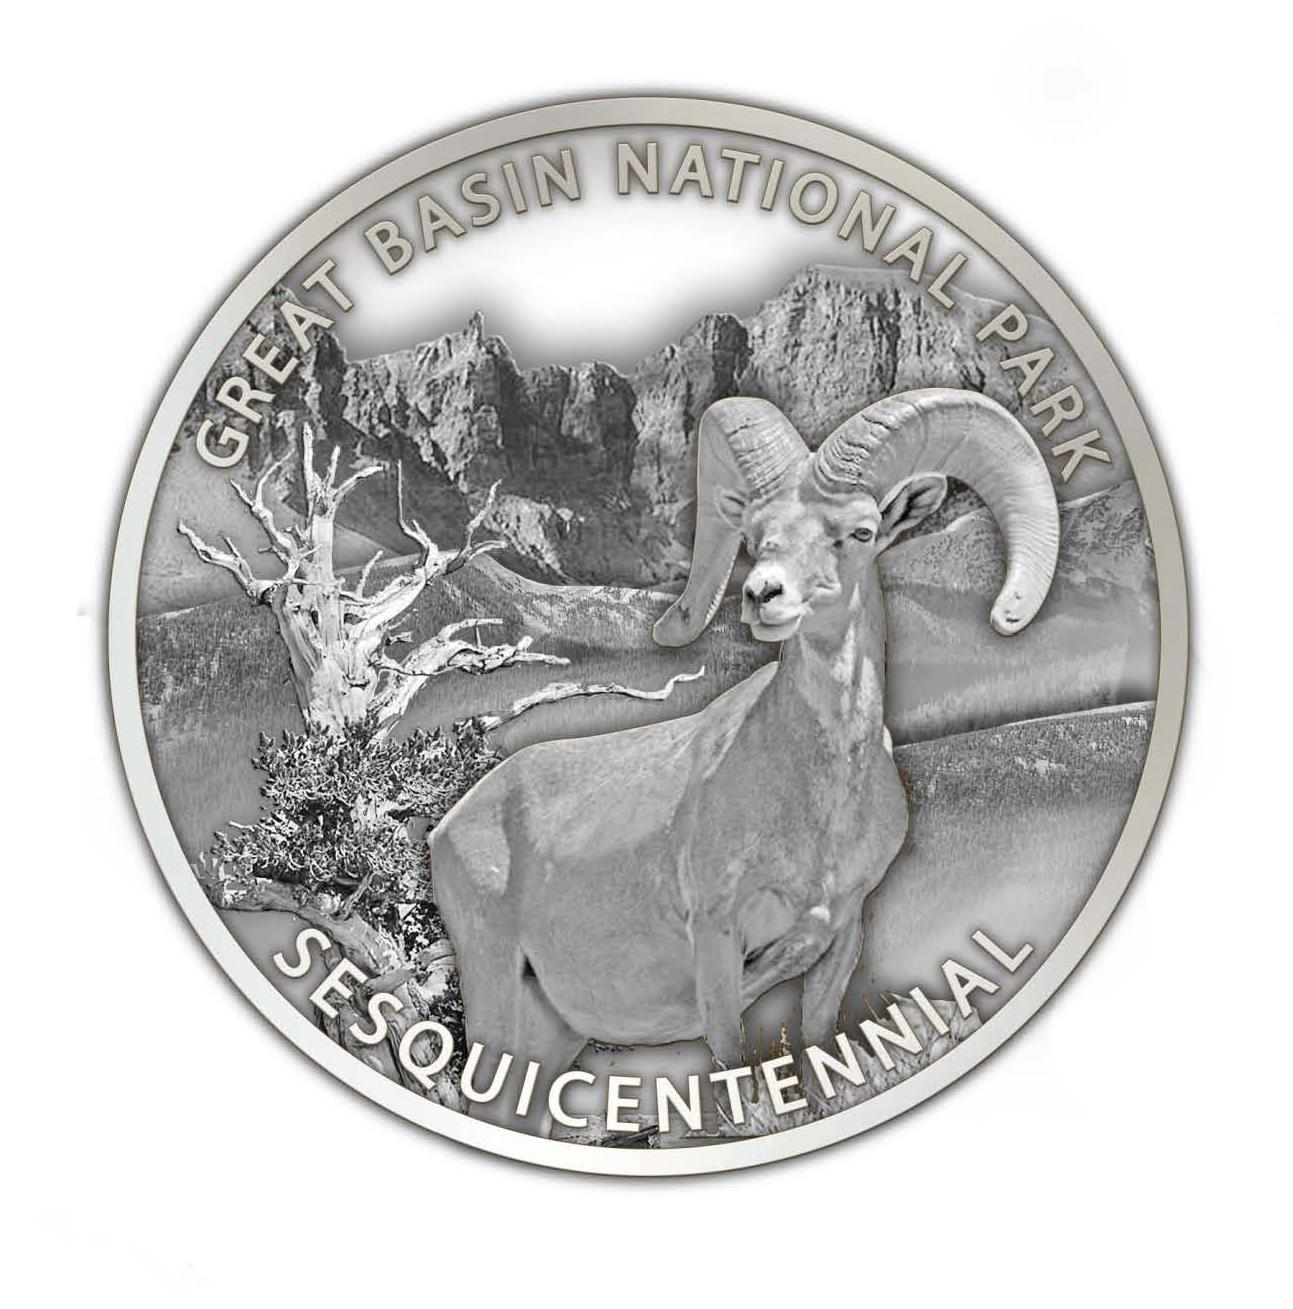 Winning Design Unveiled for Fourth Sesquicentennial Medallion